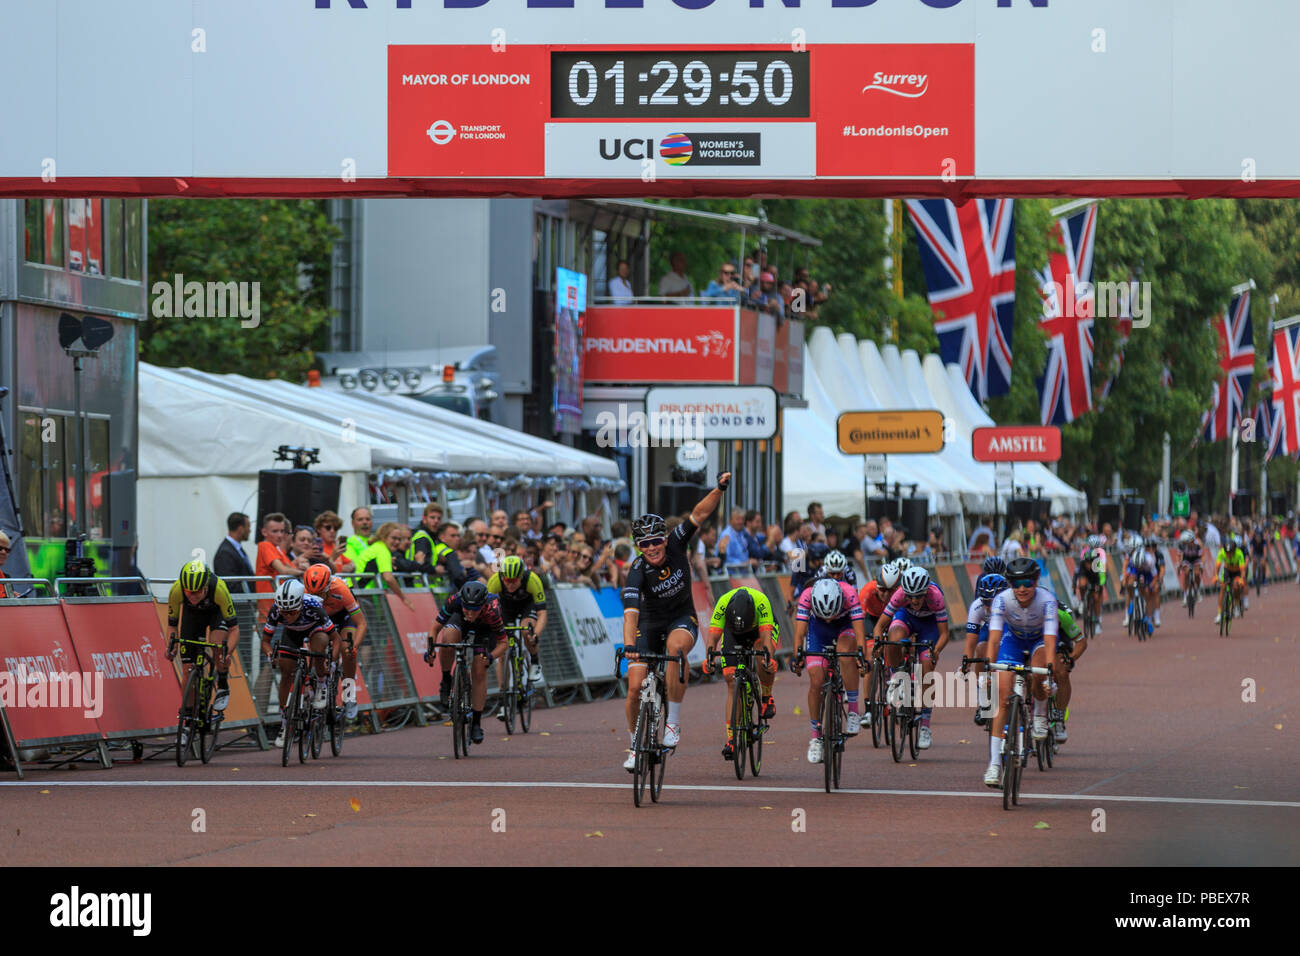 London, UK, 28 July 2018. Prudential RideLondon Classique. Kirsten Wild (Wiggle-High5, NED, centre) wins the bunch sprint at the RideLondon Classique - a 65km race around a 5.4km circuit finishing on The Mall. Wild beat Marianne Vos (Waowdeals, NED, right) and Elisa Balsamo (Valcar PBM, ITA, centre-right). Stock Photo